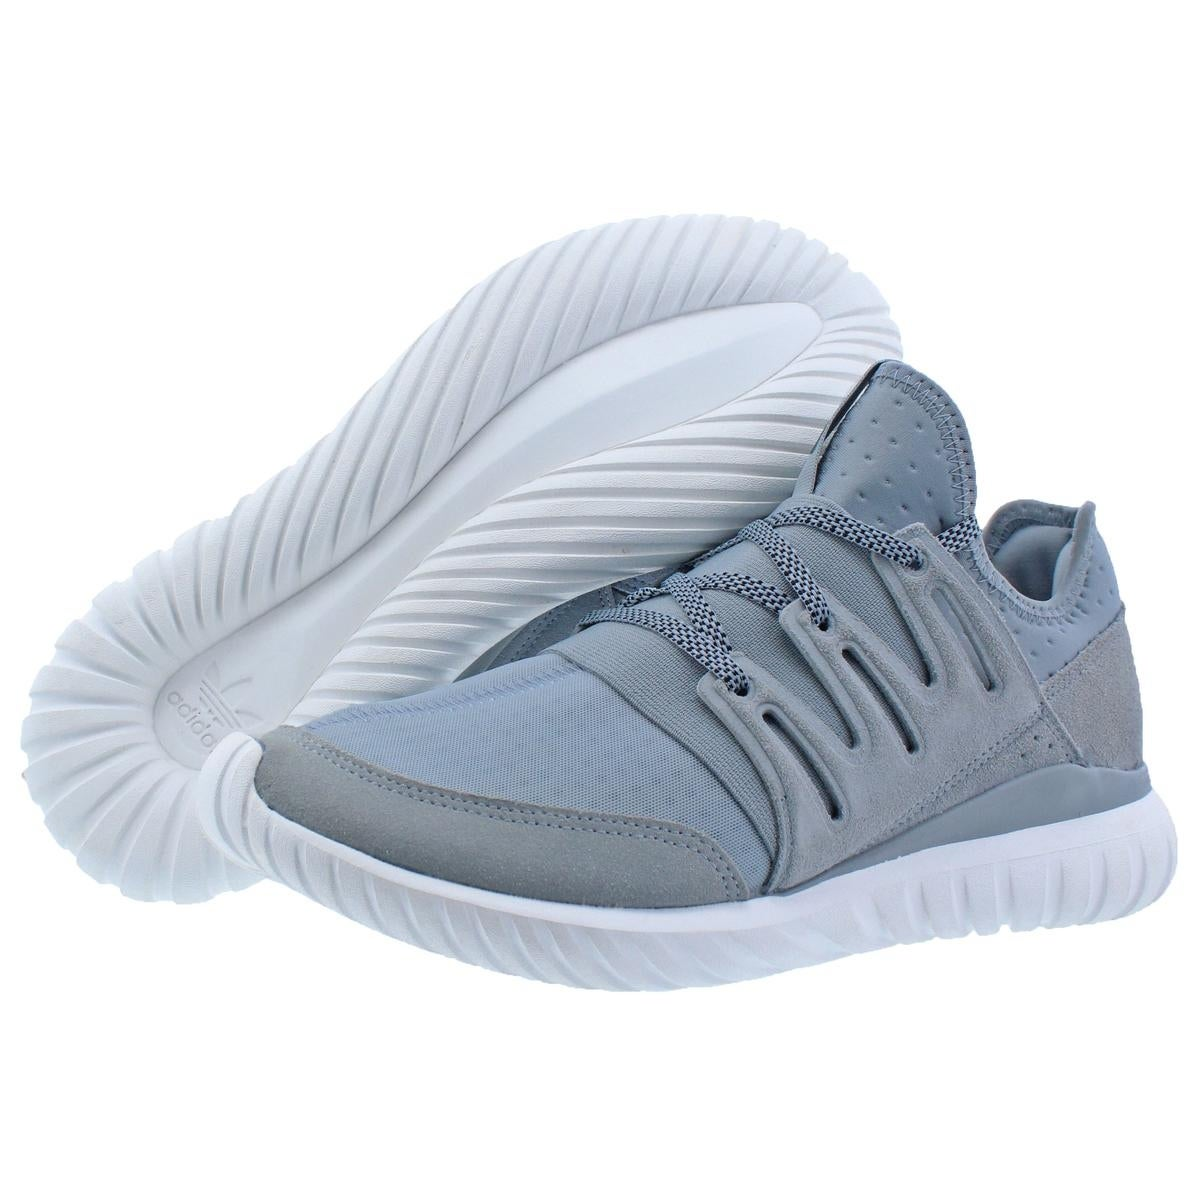 793f726f8398 Shop Adidas Mens Tubular Radial Casual Shoes Performance Retro - 9.5 medium  (d) - Free Shipping Today - Overstock.com - 22311480